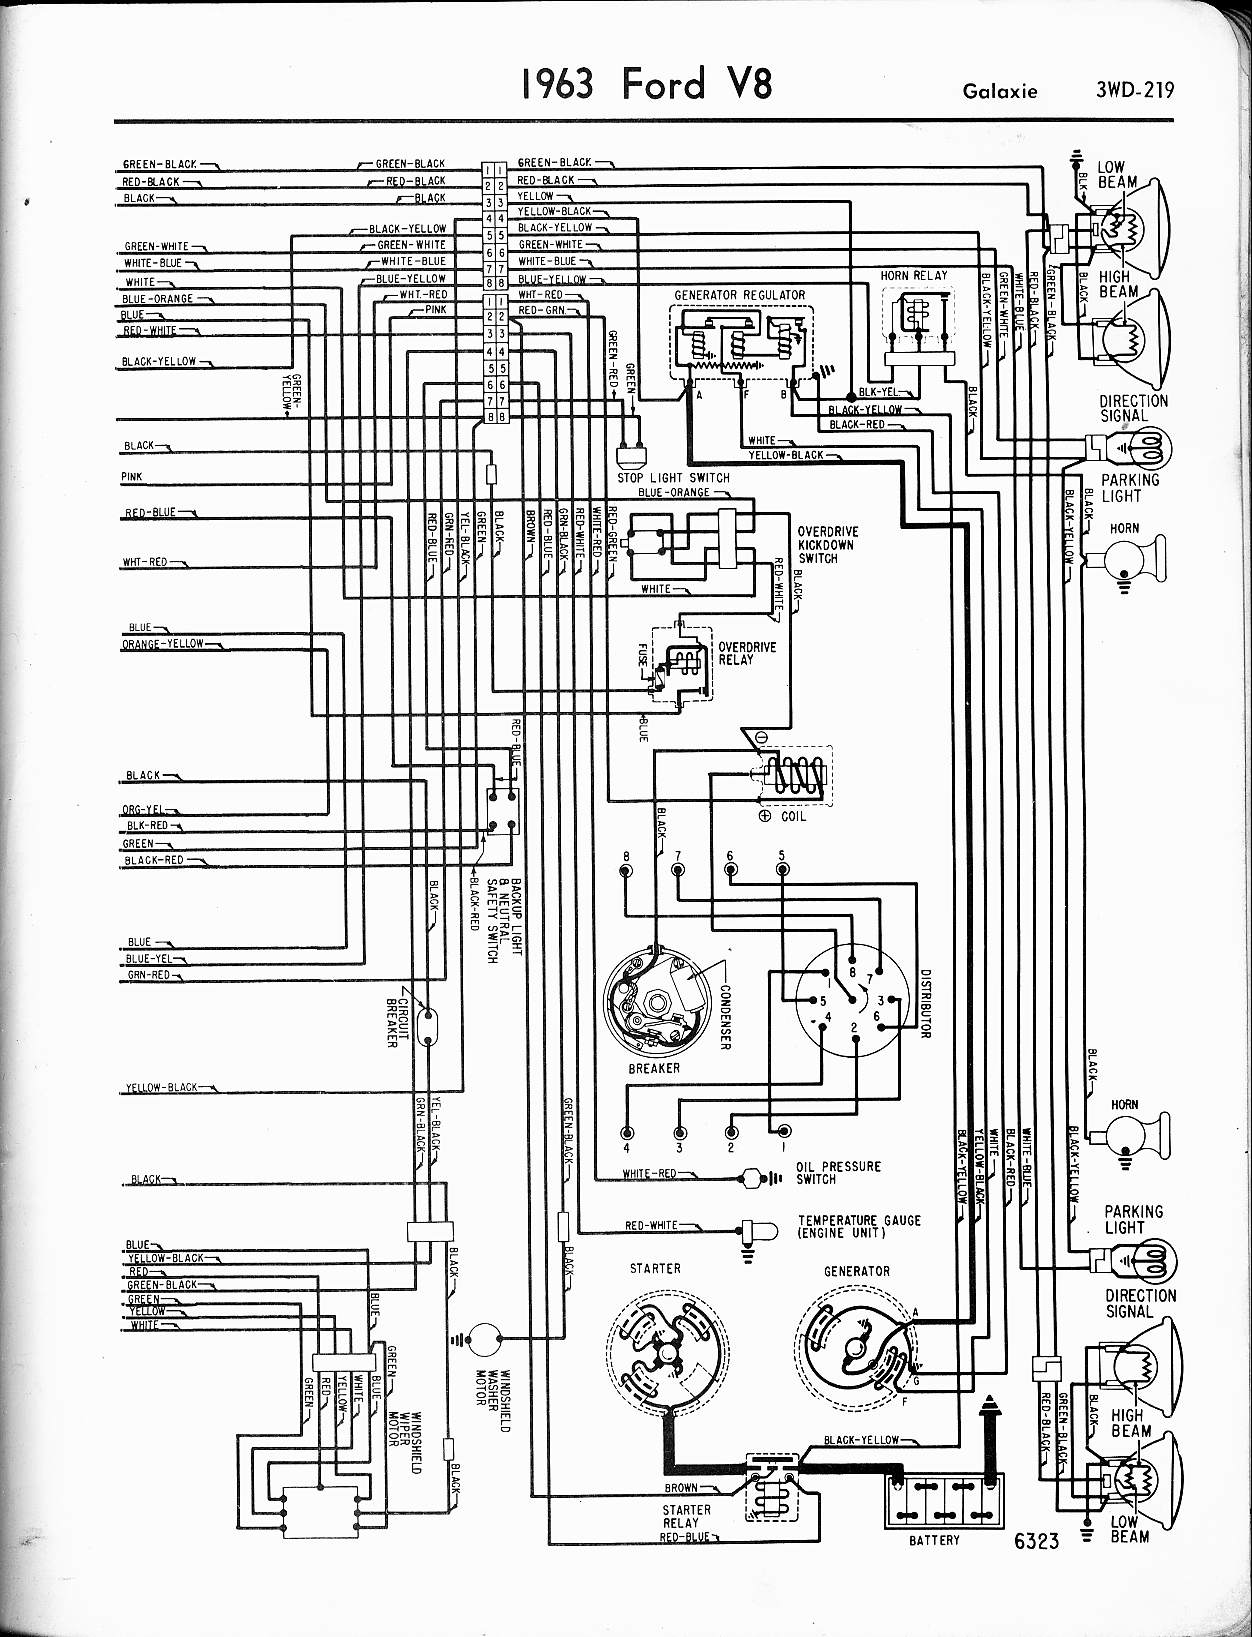 57 65 Ford Wiring Diagrams Lincoln 225 S Diagram 1963 V8 Galaxie Right